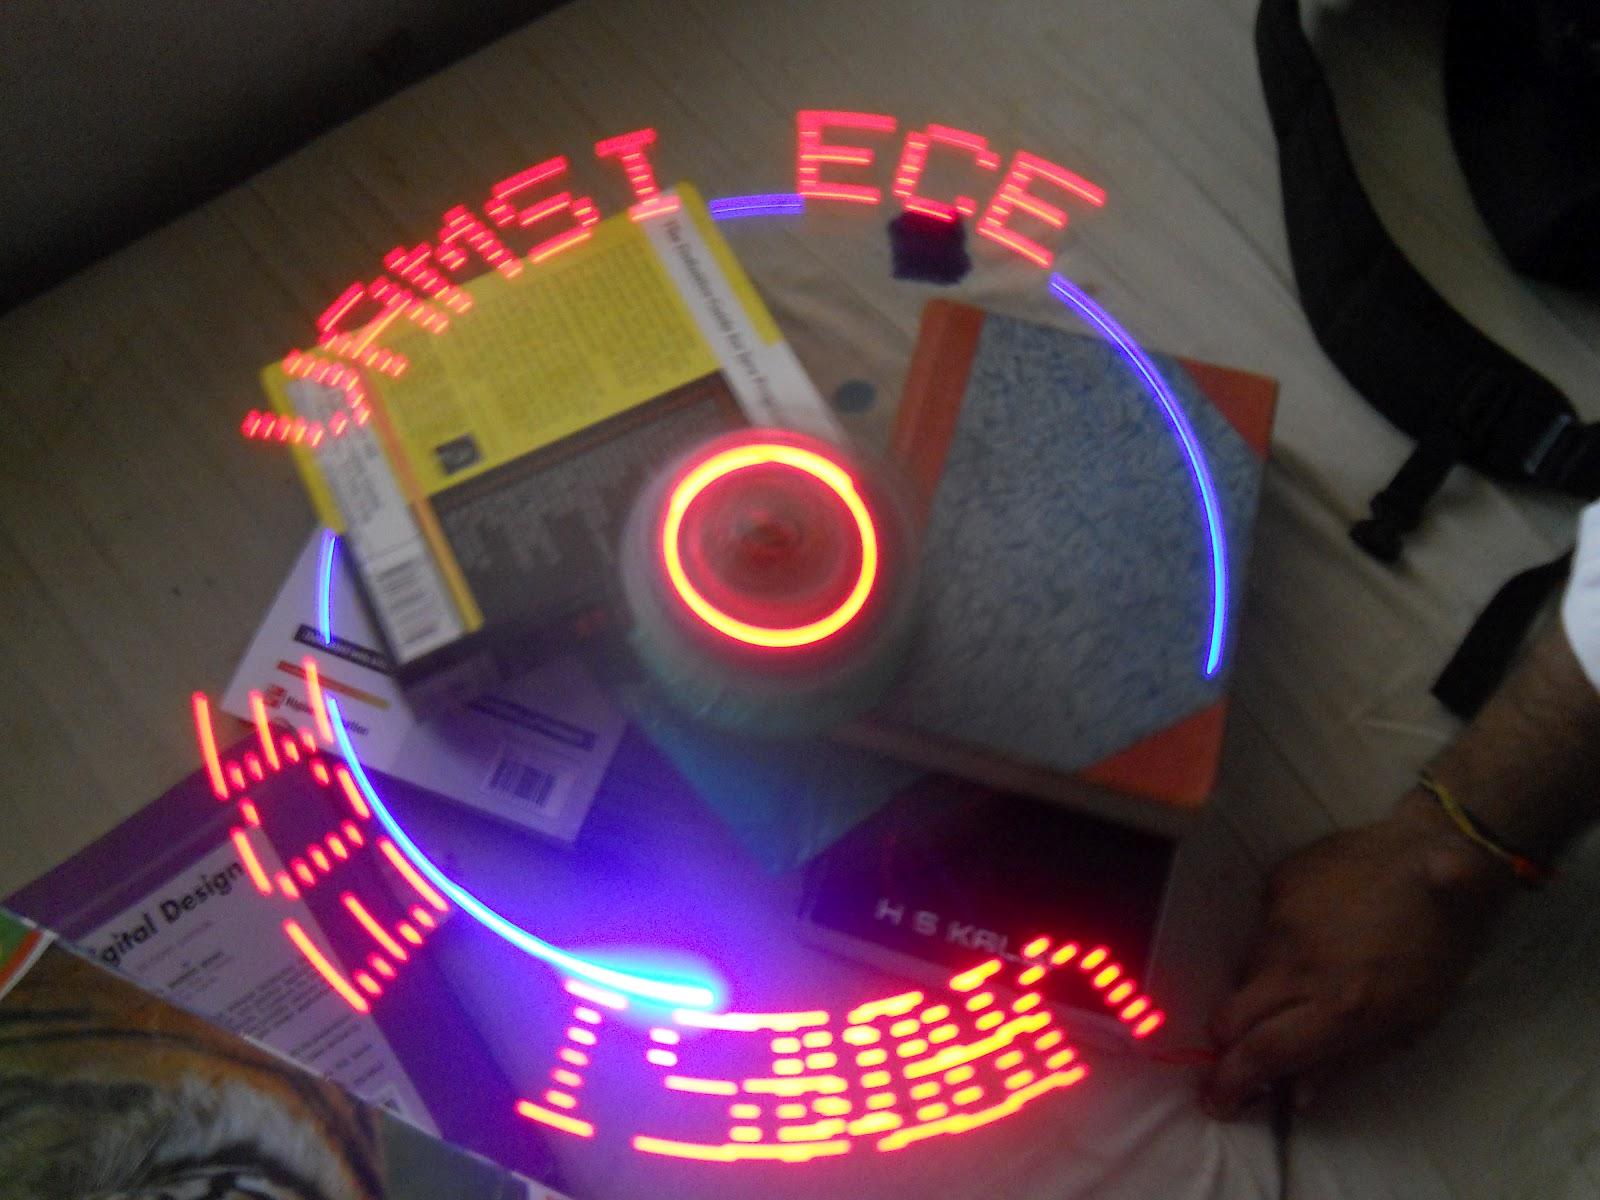 ROBO ZONE: PROPELLER(ROTATING) LED DISPLAY